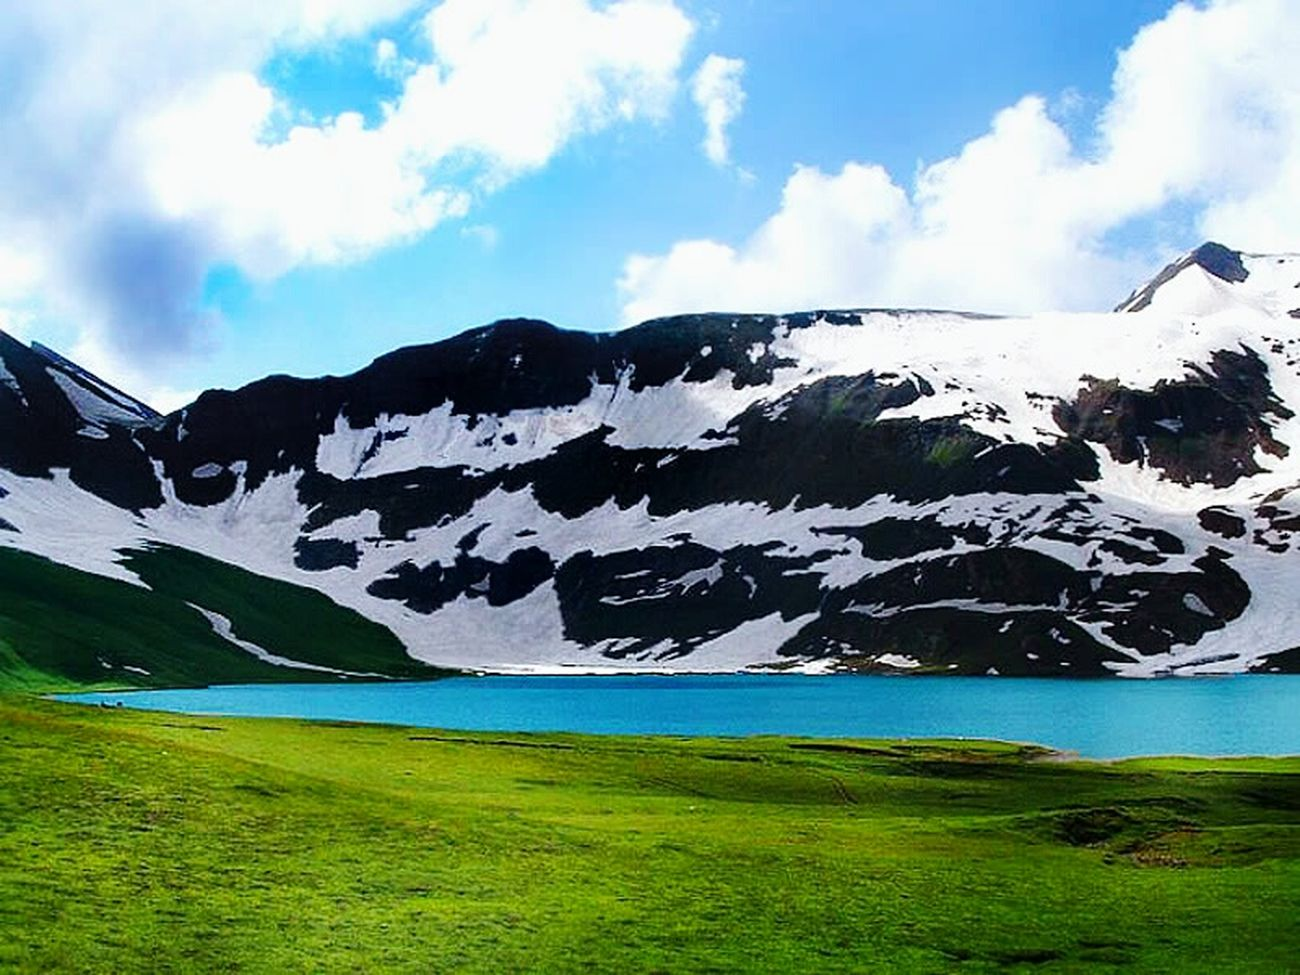 KPK Kaghanvalley Dudipatsar Lake Naran Landscape_photography Landscapes EyeEm Best Shots Pakistan Photography The Explorer - 2014 EyeEm Awards